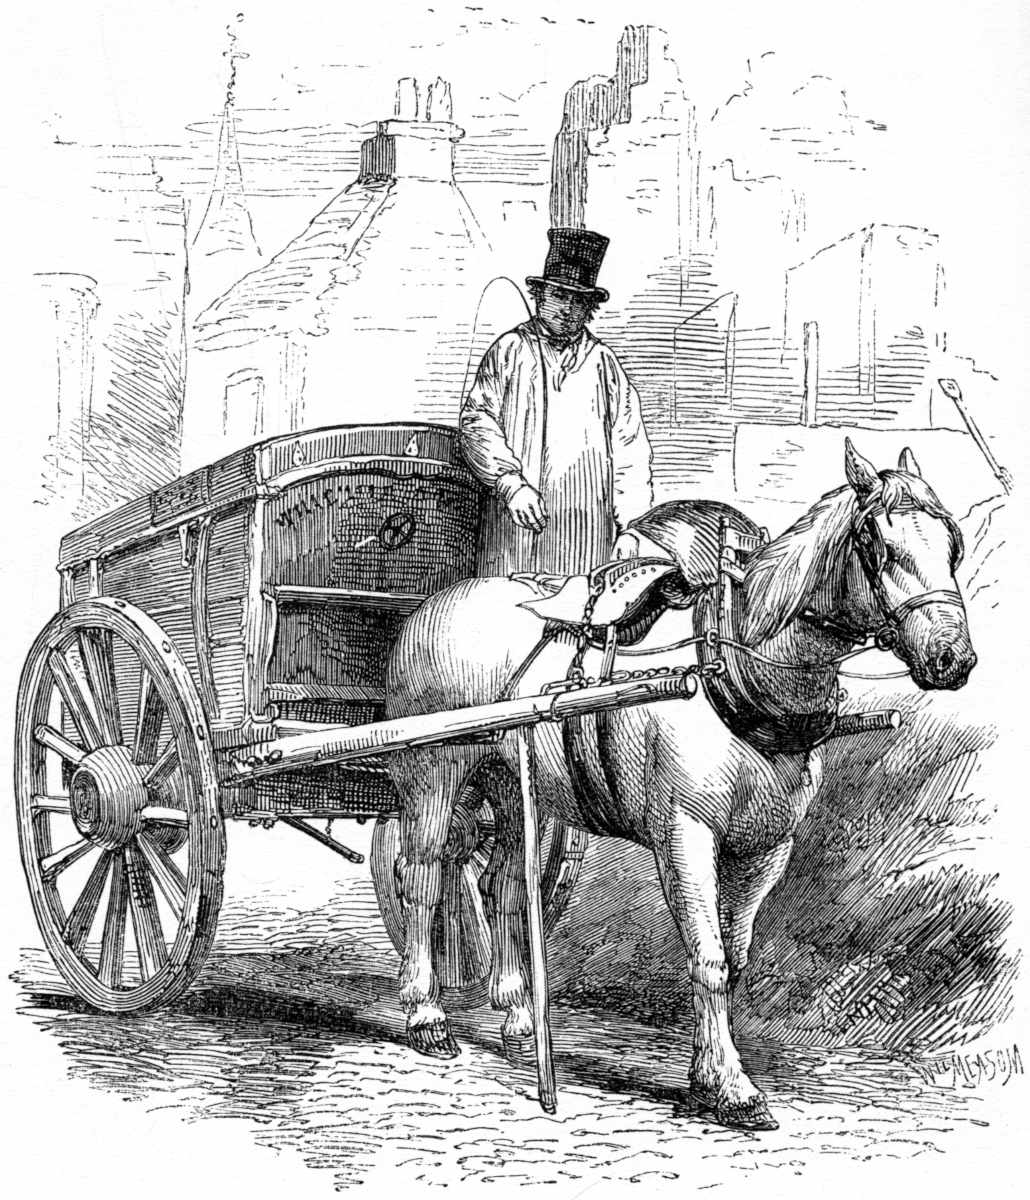 NEW YORK CITY MOVING DAY PAYING THE PIPER HOUSEKEEPING HORSE WITH FULL CART LOAD